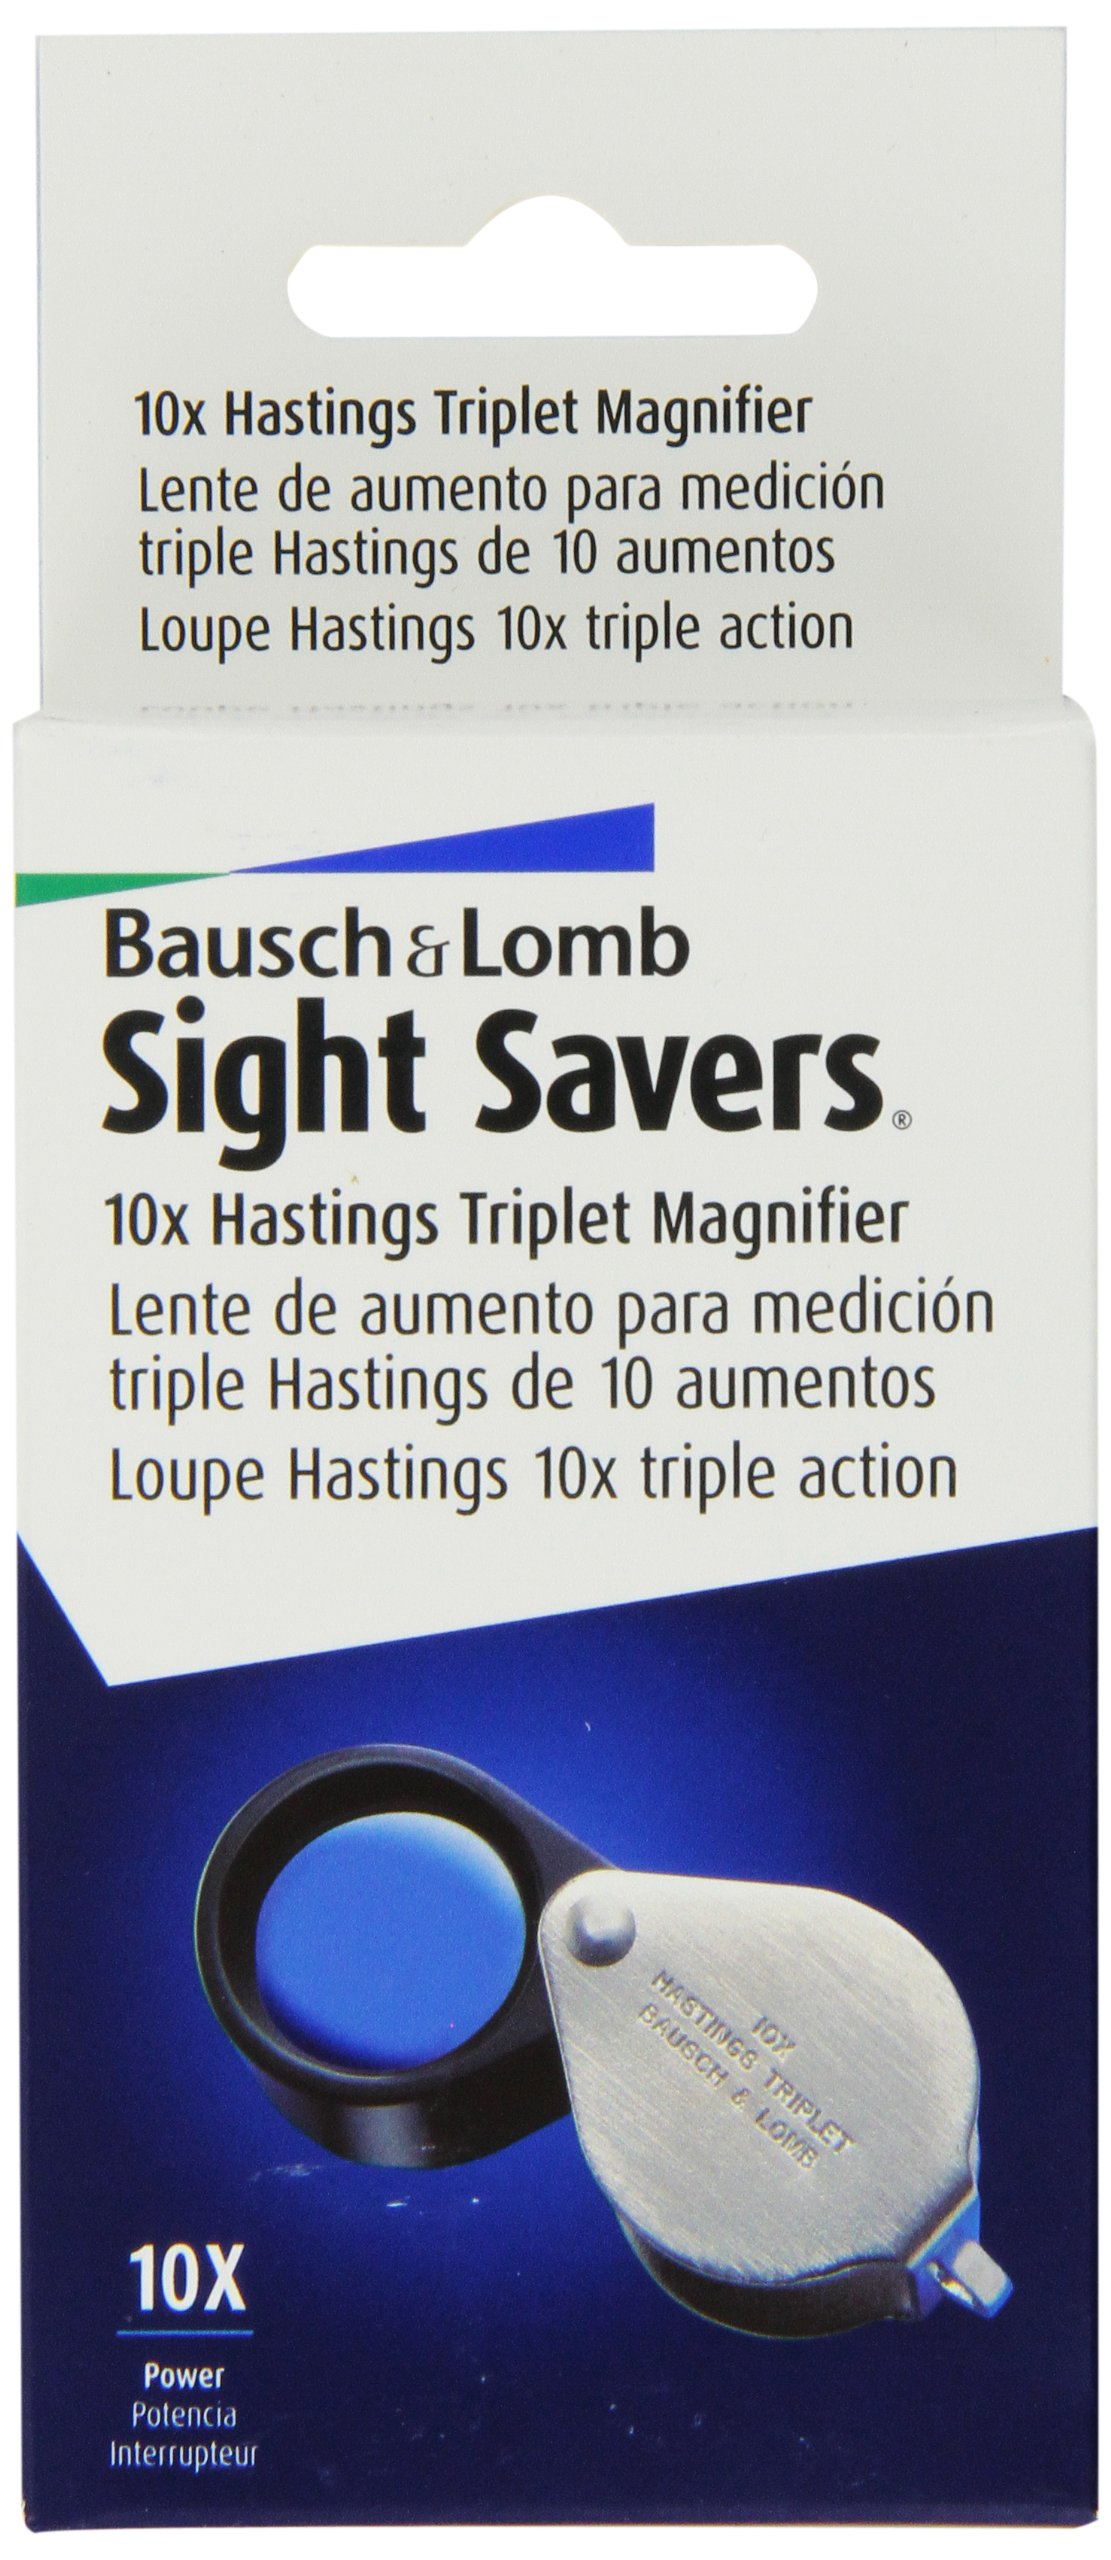 Bausch and Lomb Sight Savers Hastings Triplet 10X Magnifier 816171 by Bausch & Lomb